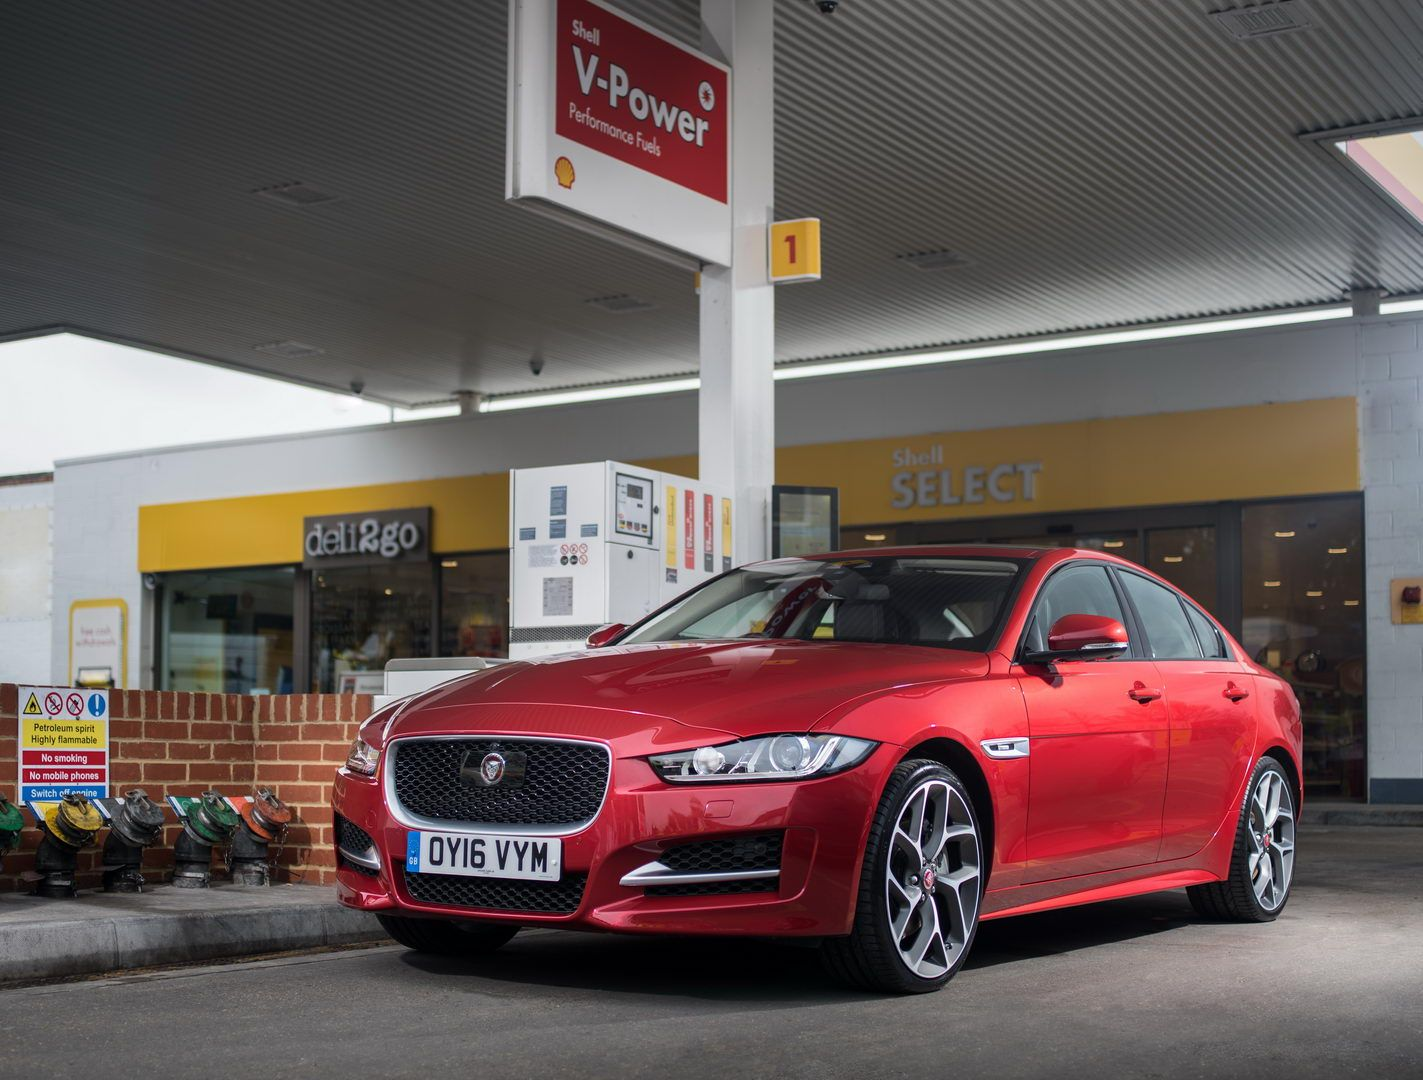 Jaguar And Shell Are Partnering To Allow In Car Fuel Payments Via Mobile Apps They Are Testing In The Uk With A Plan To Launch Gl Car Fuel Car Payment Jaguar